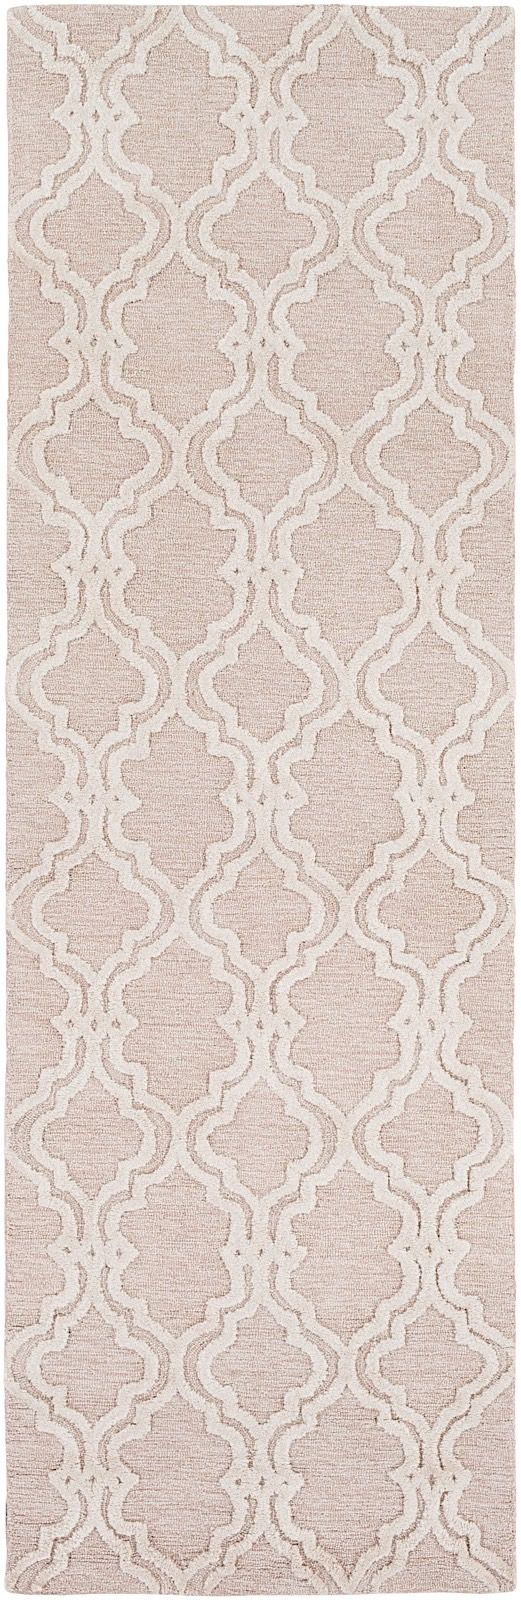 surya gable contemporary area rug collection